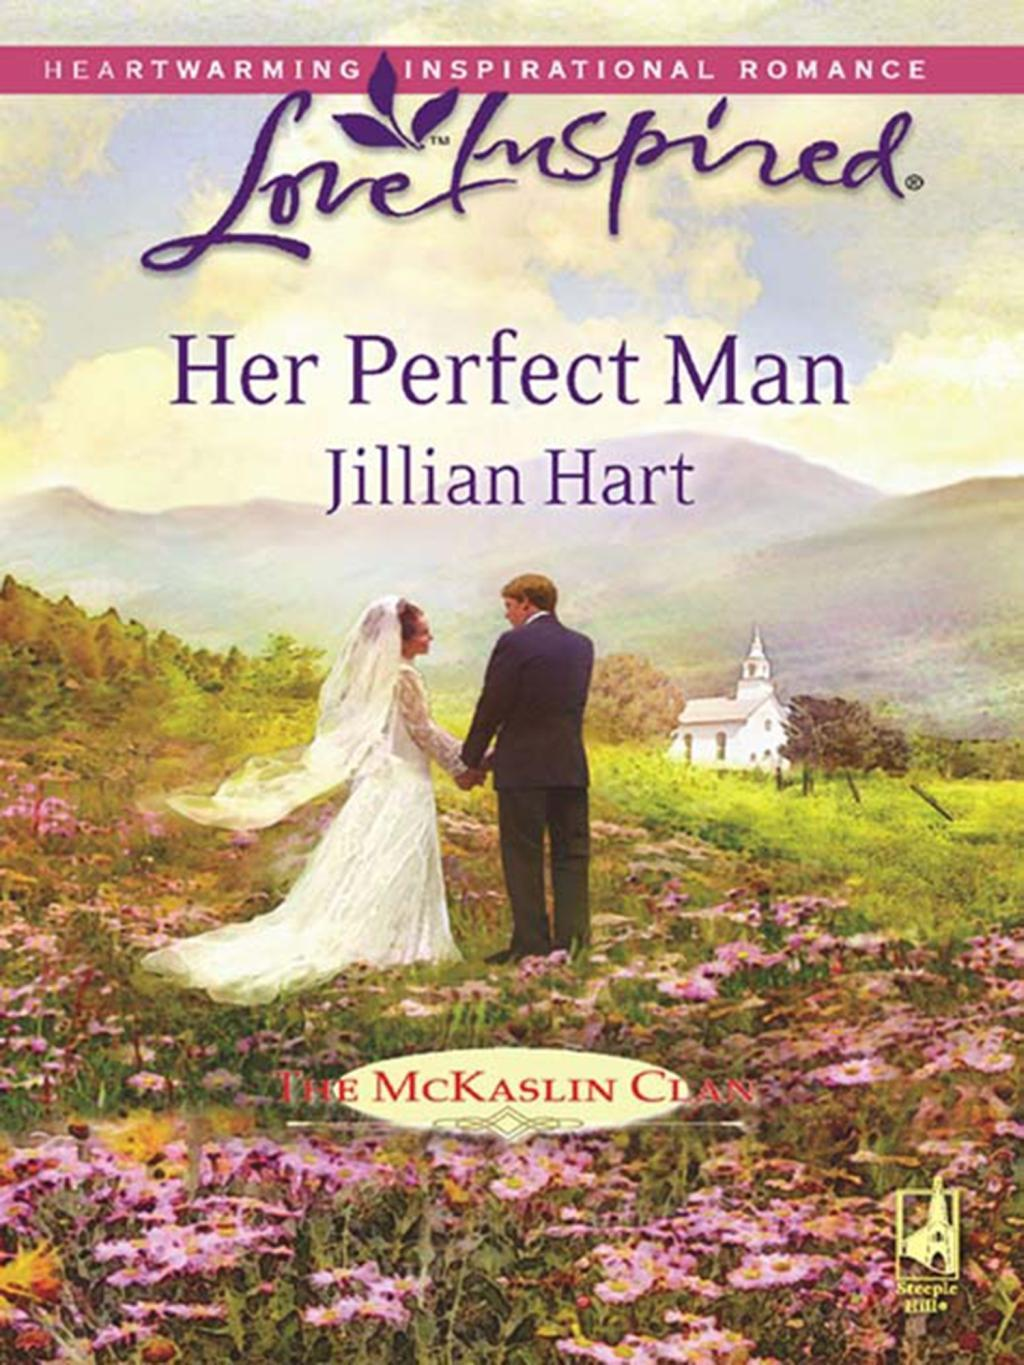 Her Perfect Man (Mills & Boon Love Inspired) (The McKaslin Clan, Book 11)